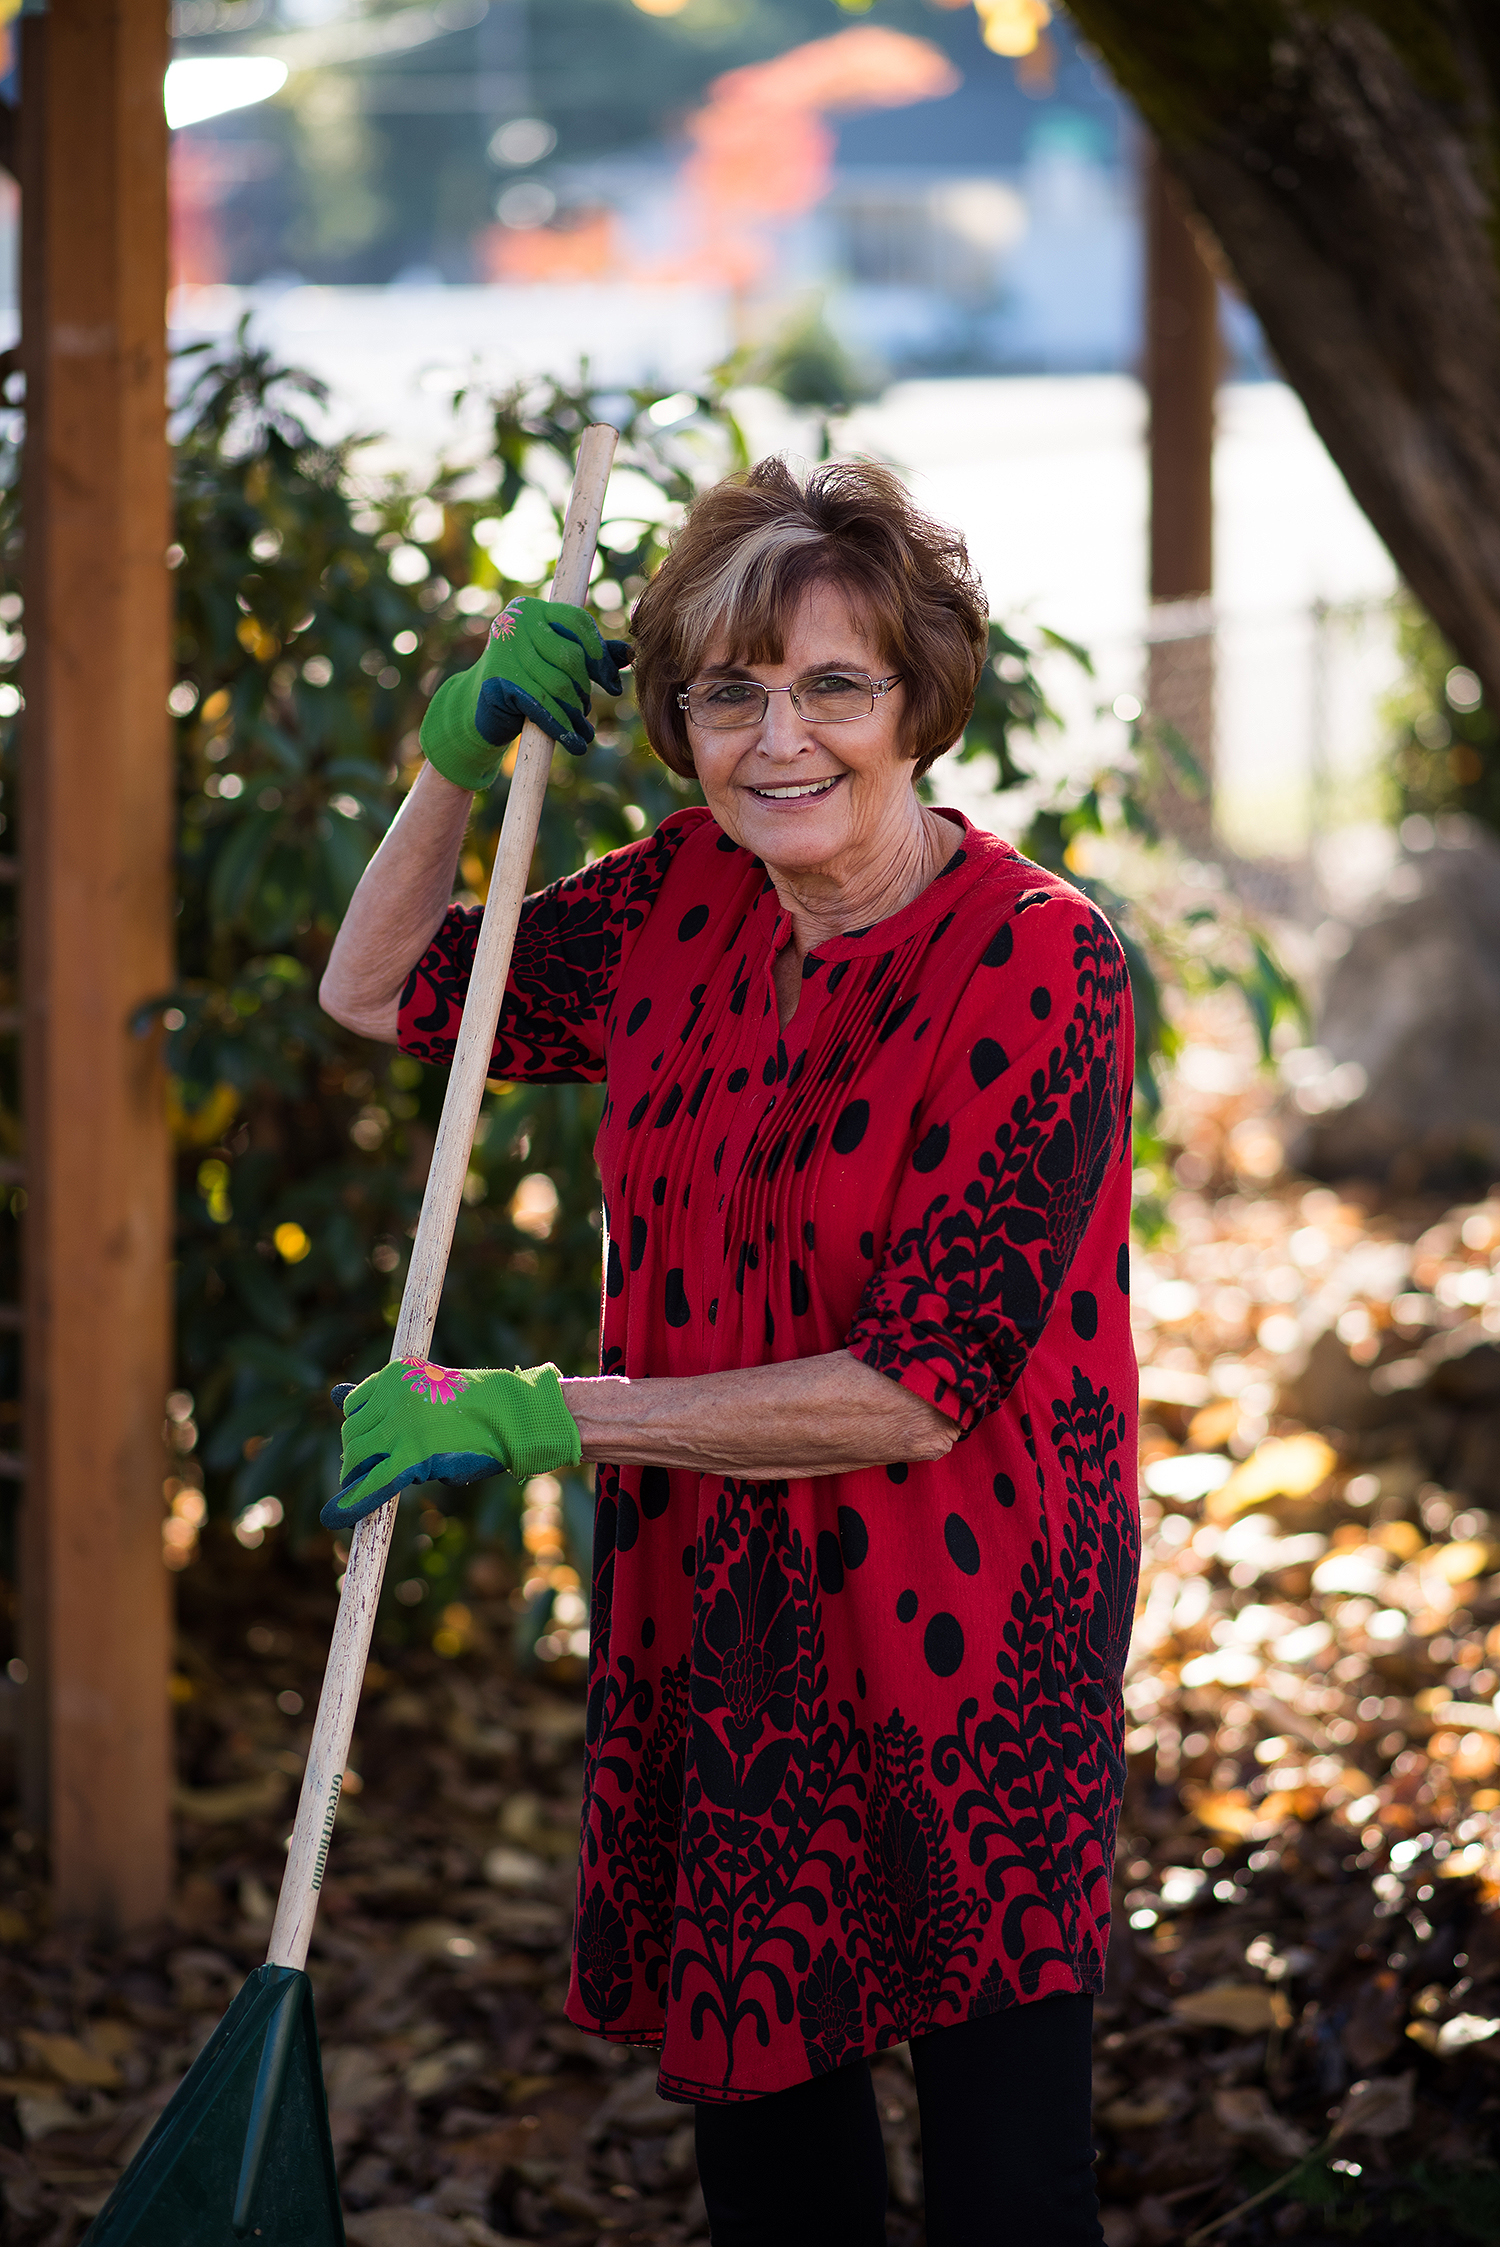 Patient Joanne Williams back at work in her yard.